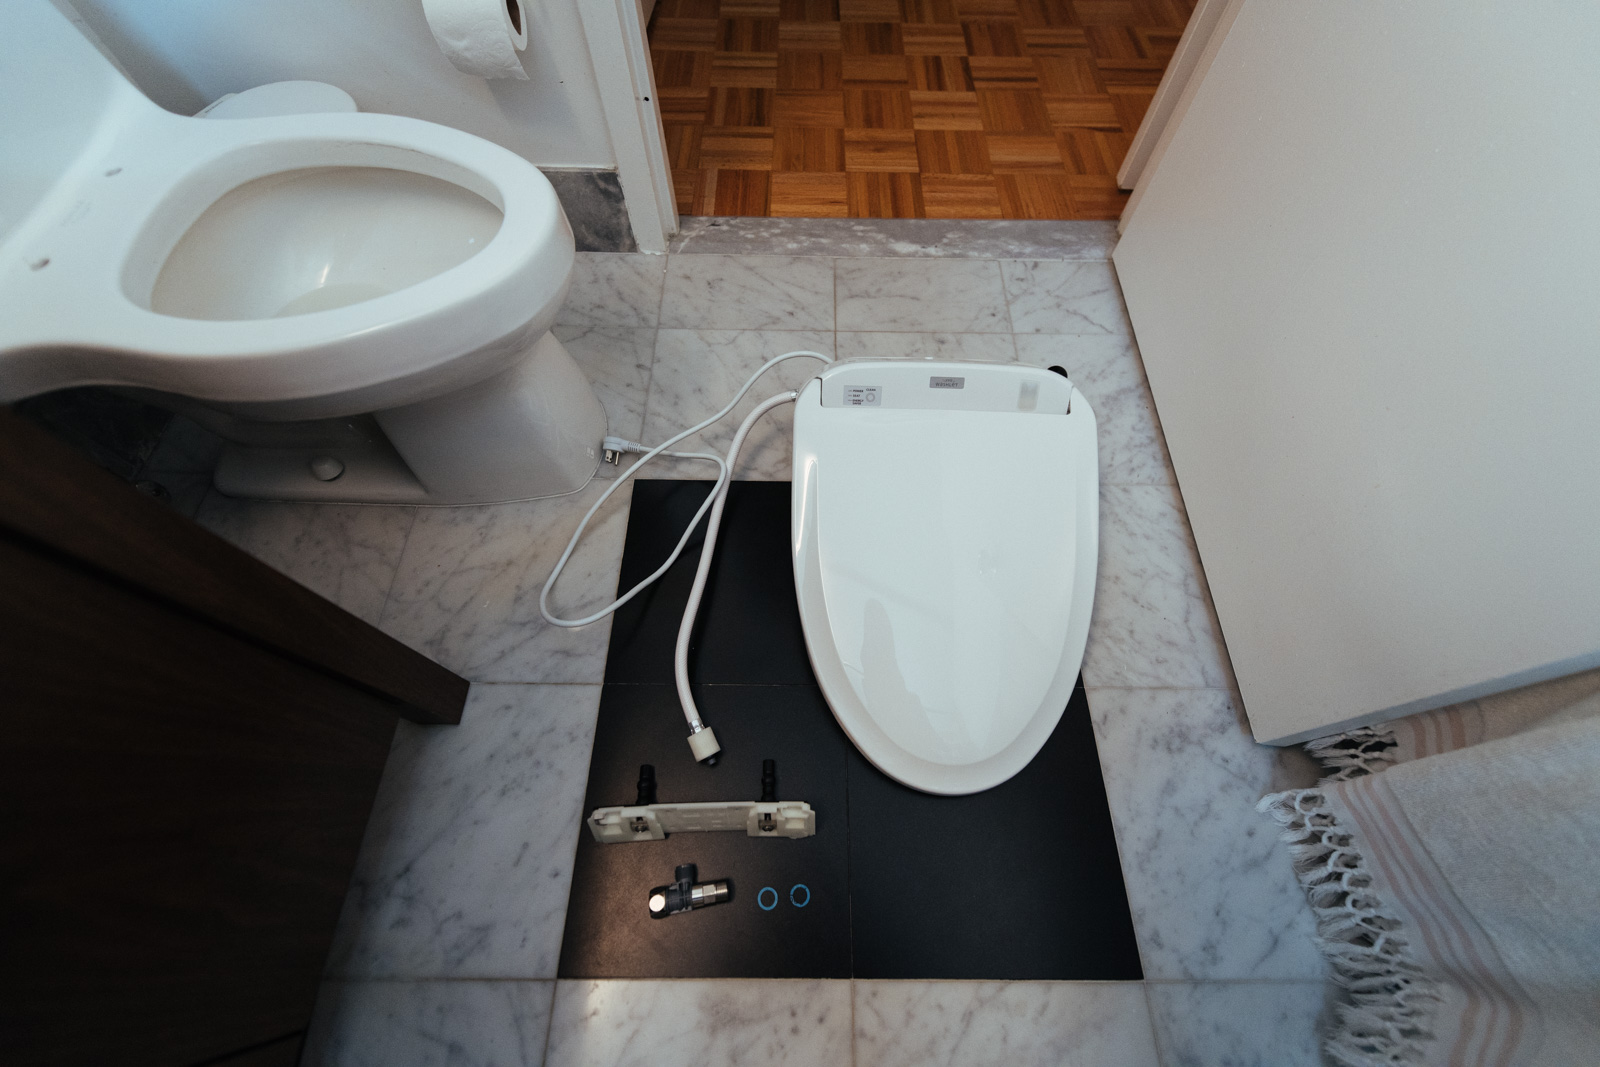 The TOTO Washlet Improves Households One Bathroom at a Time - COOL ...